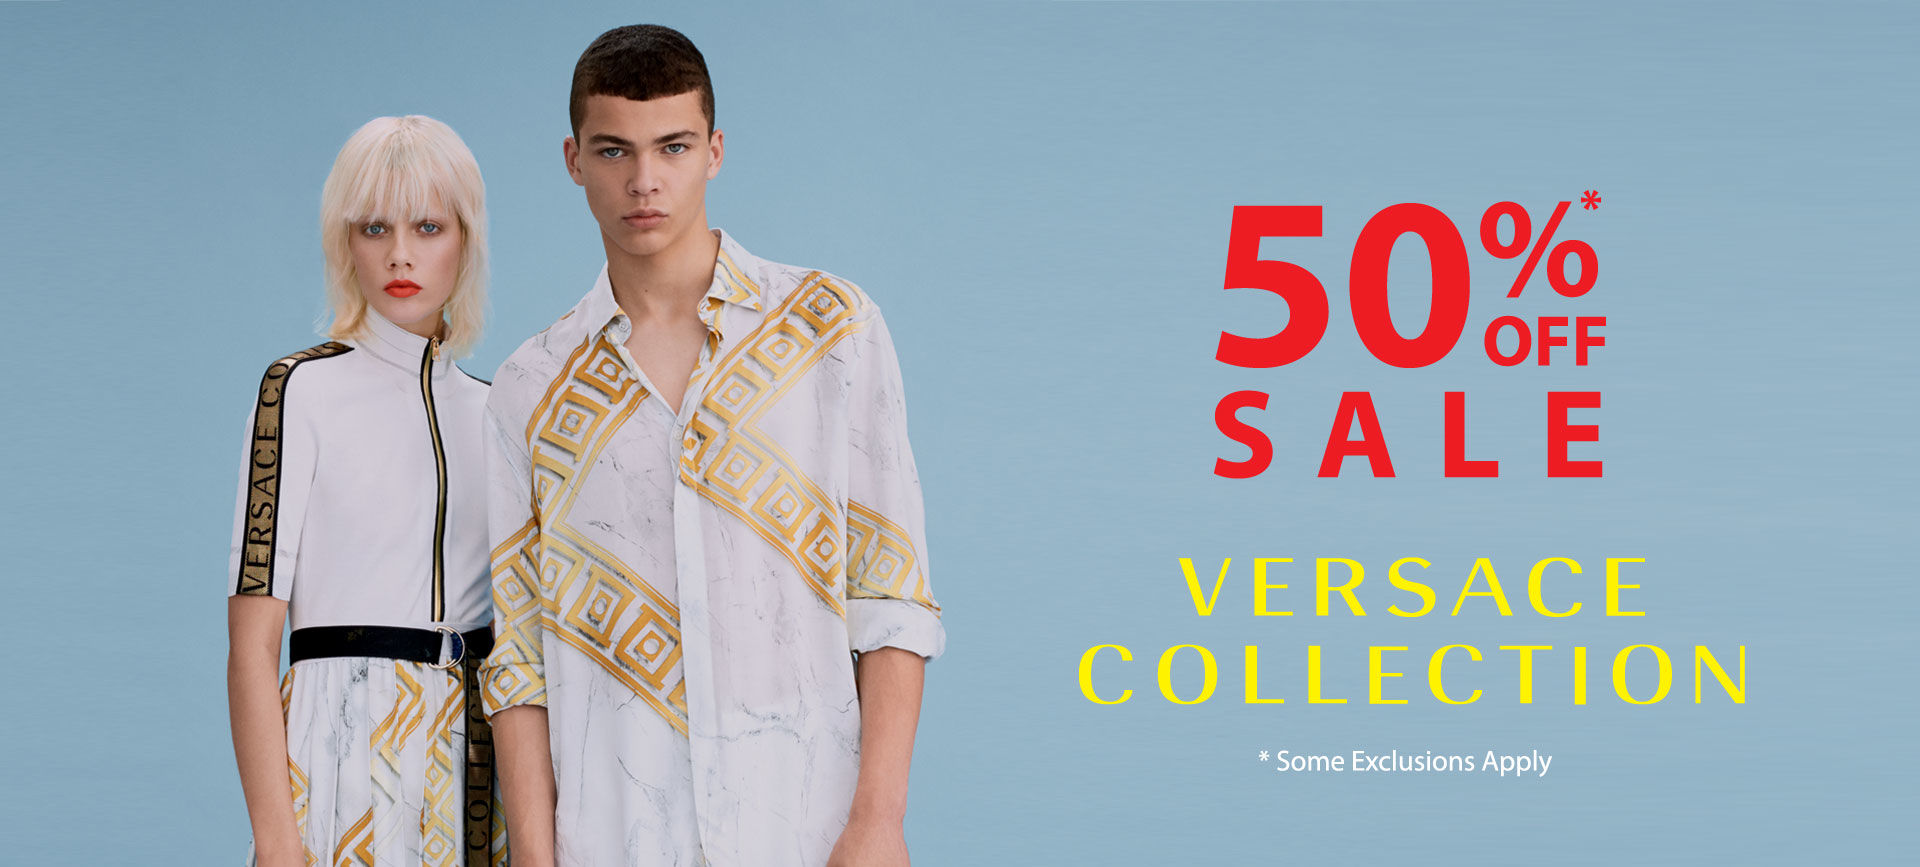 Versace Collection from George Harrison Menswear